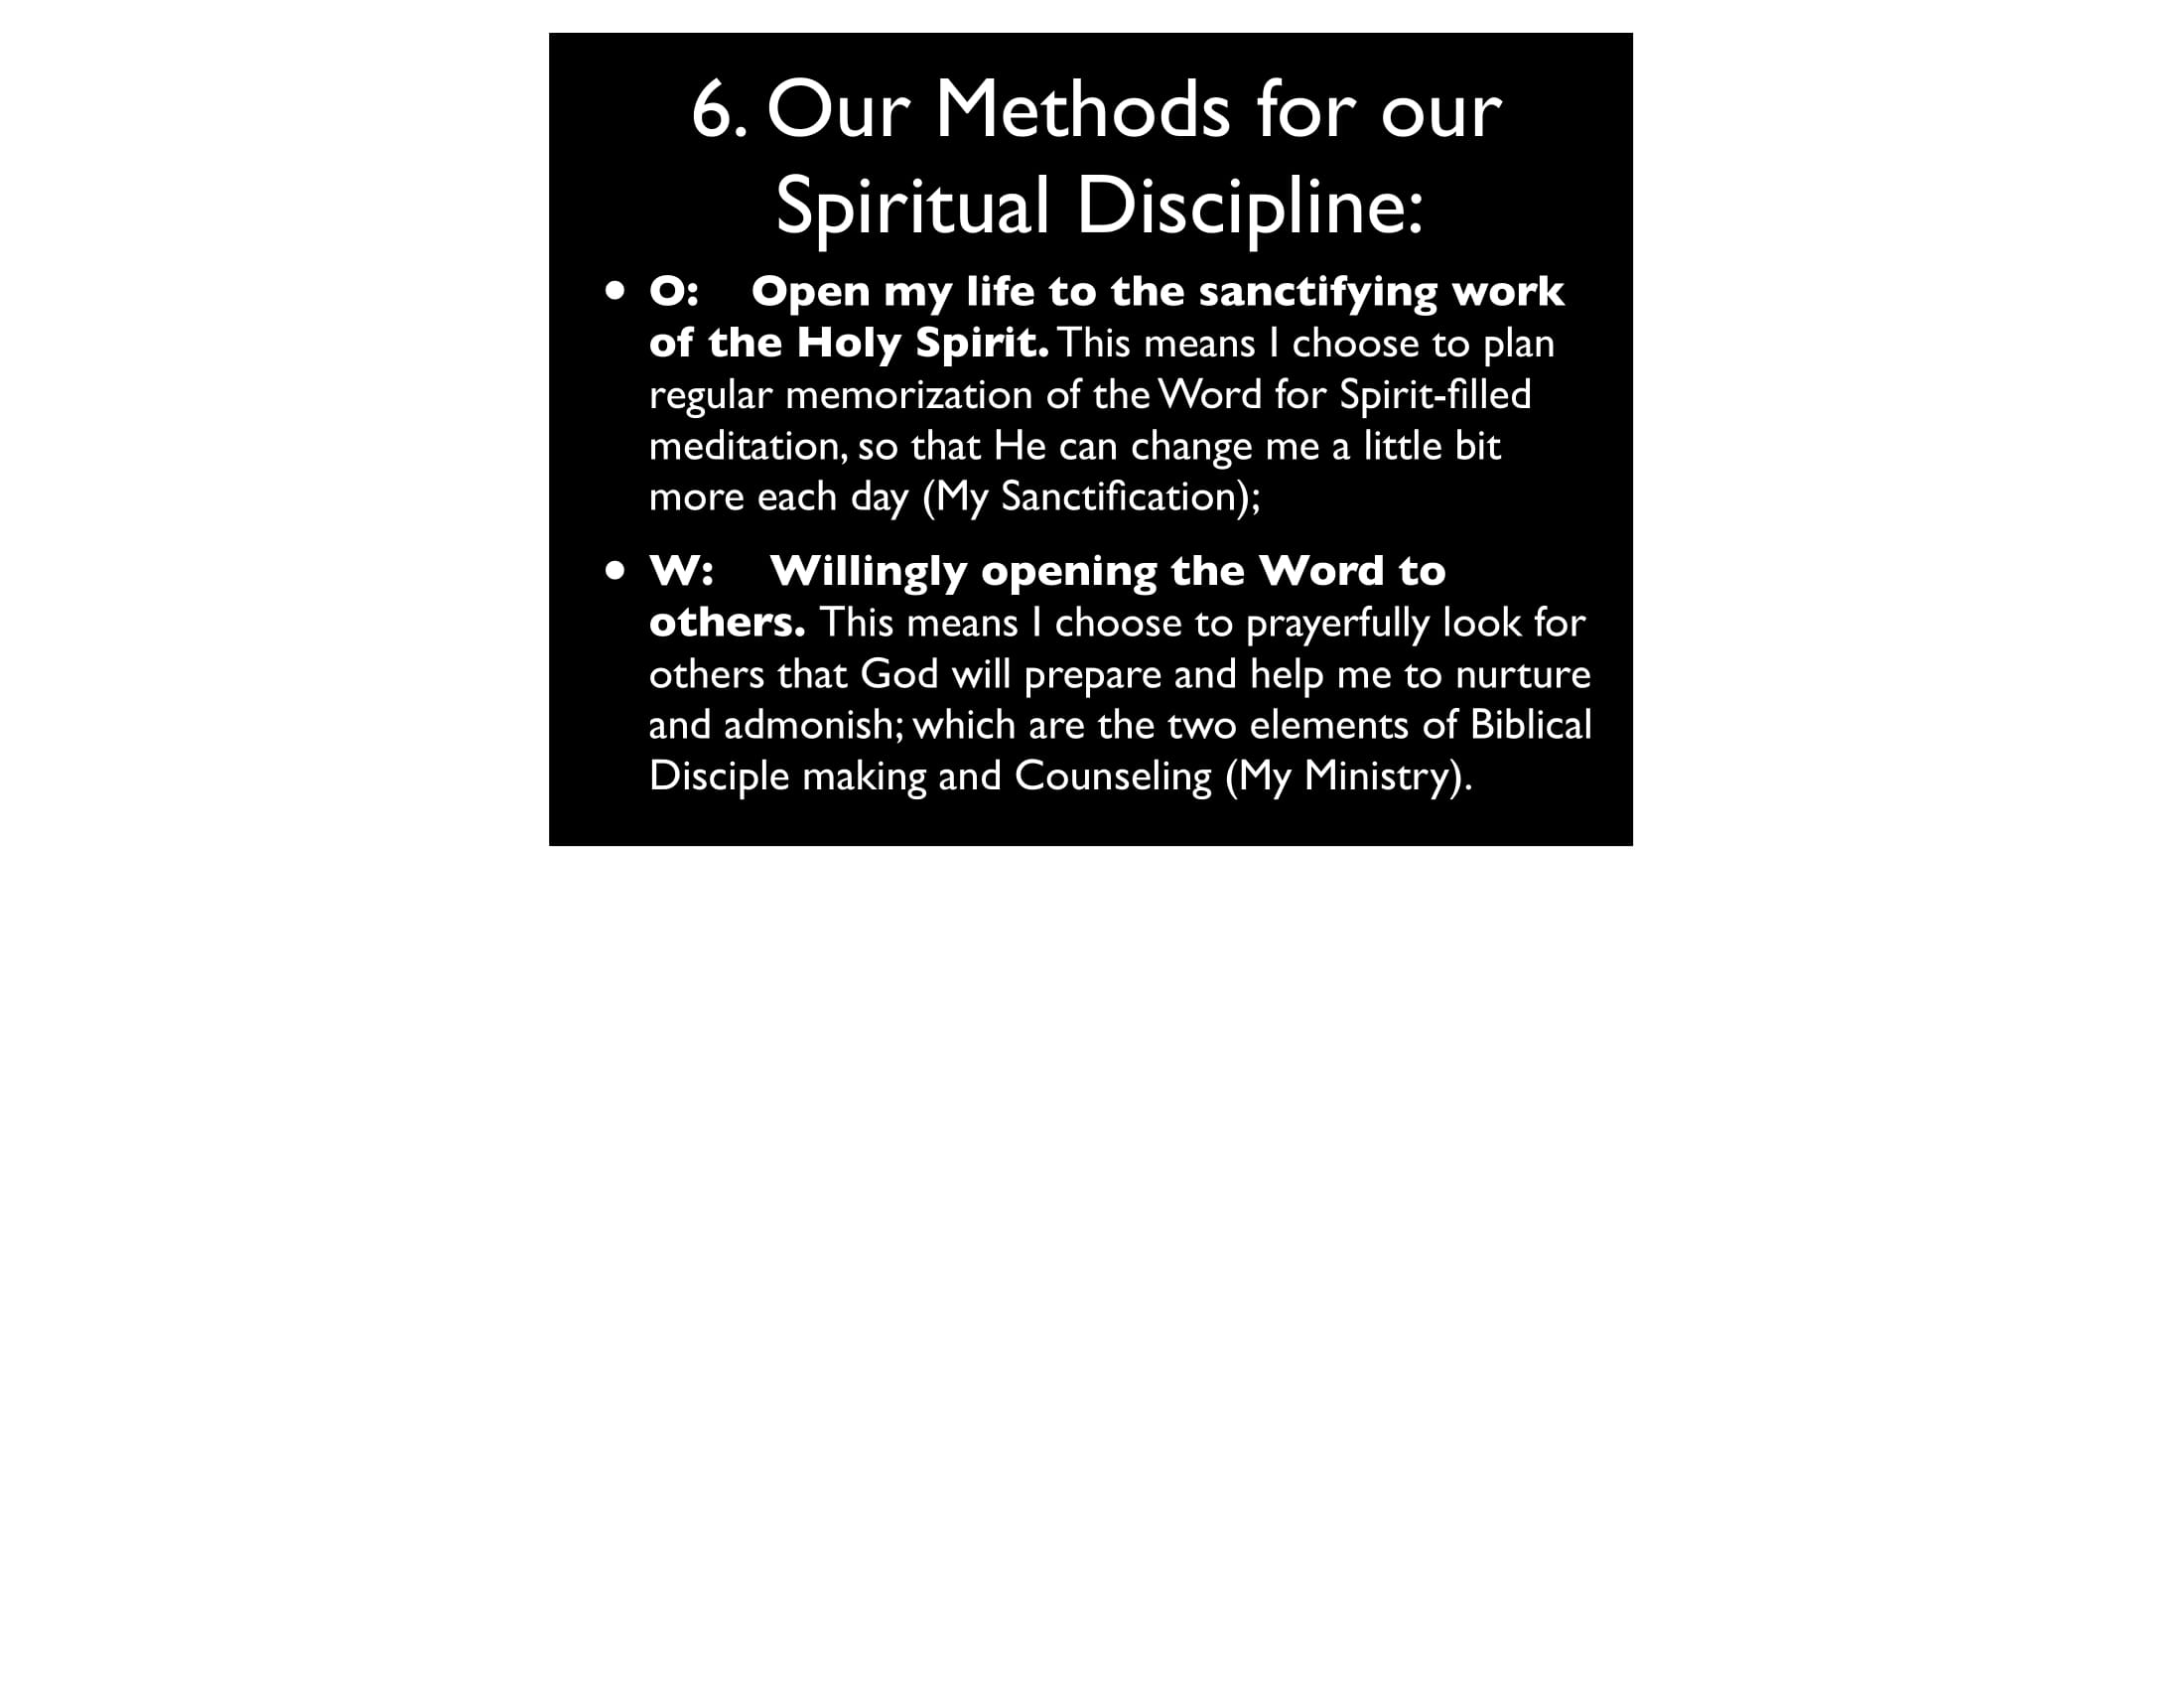 BC&D-01 - The Biblical Basis For Noutheitc Counseling-11